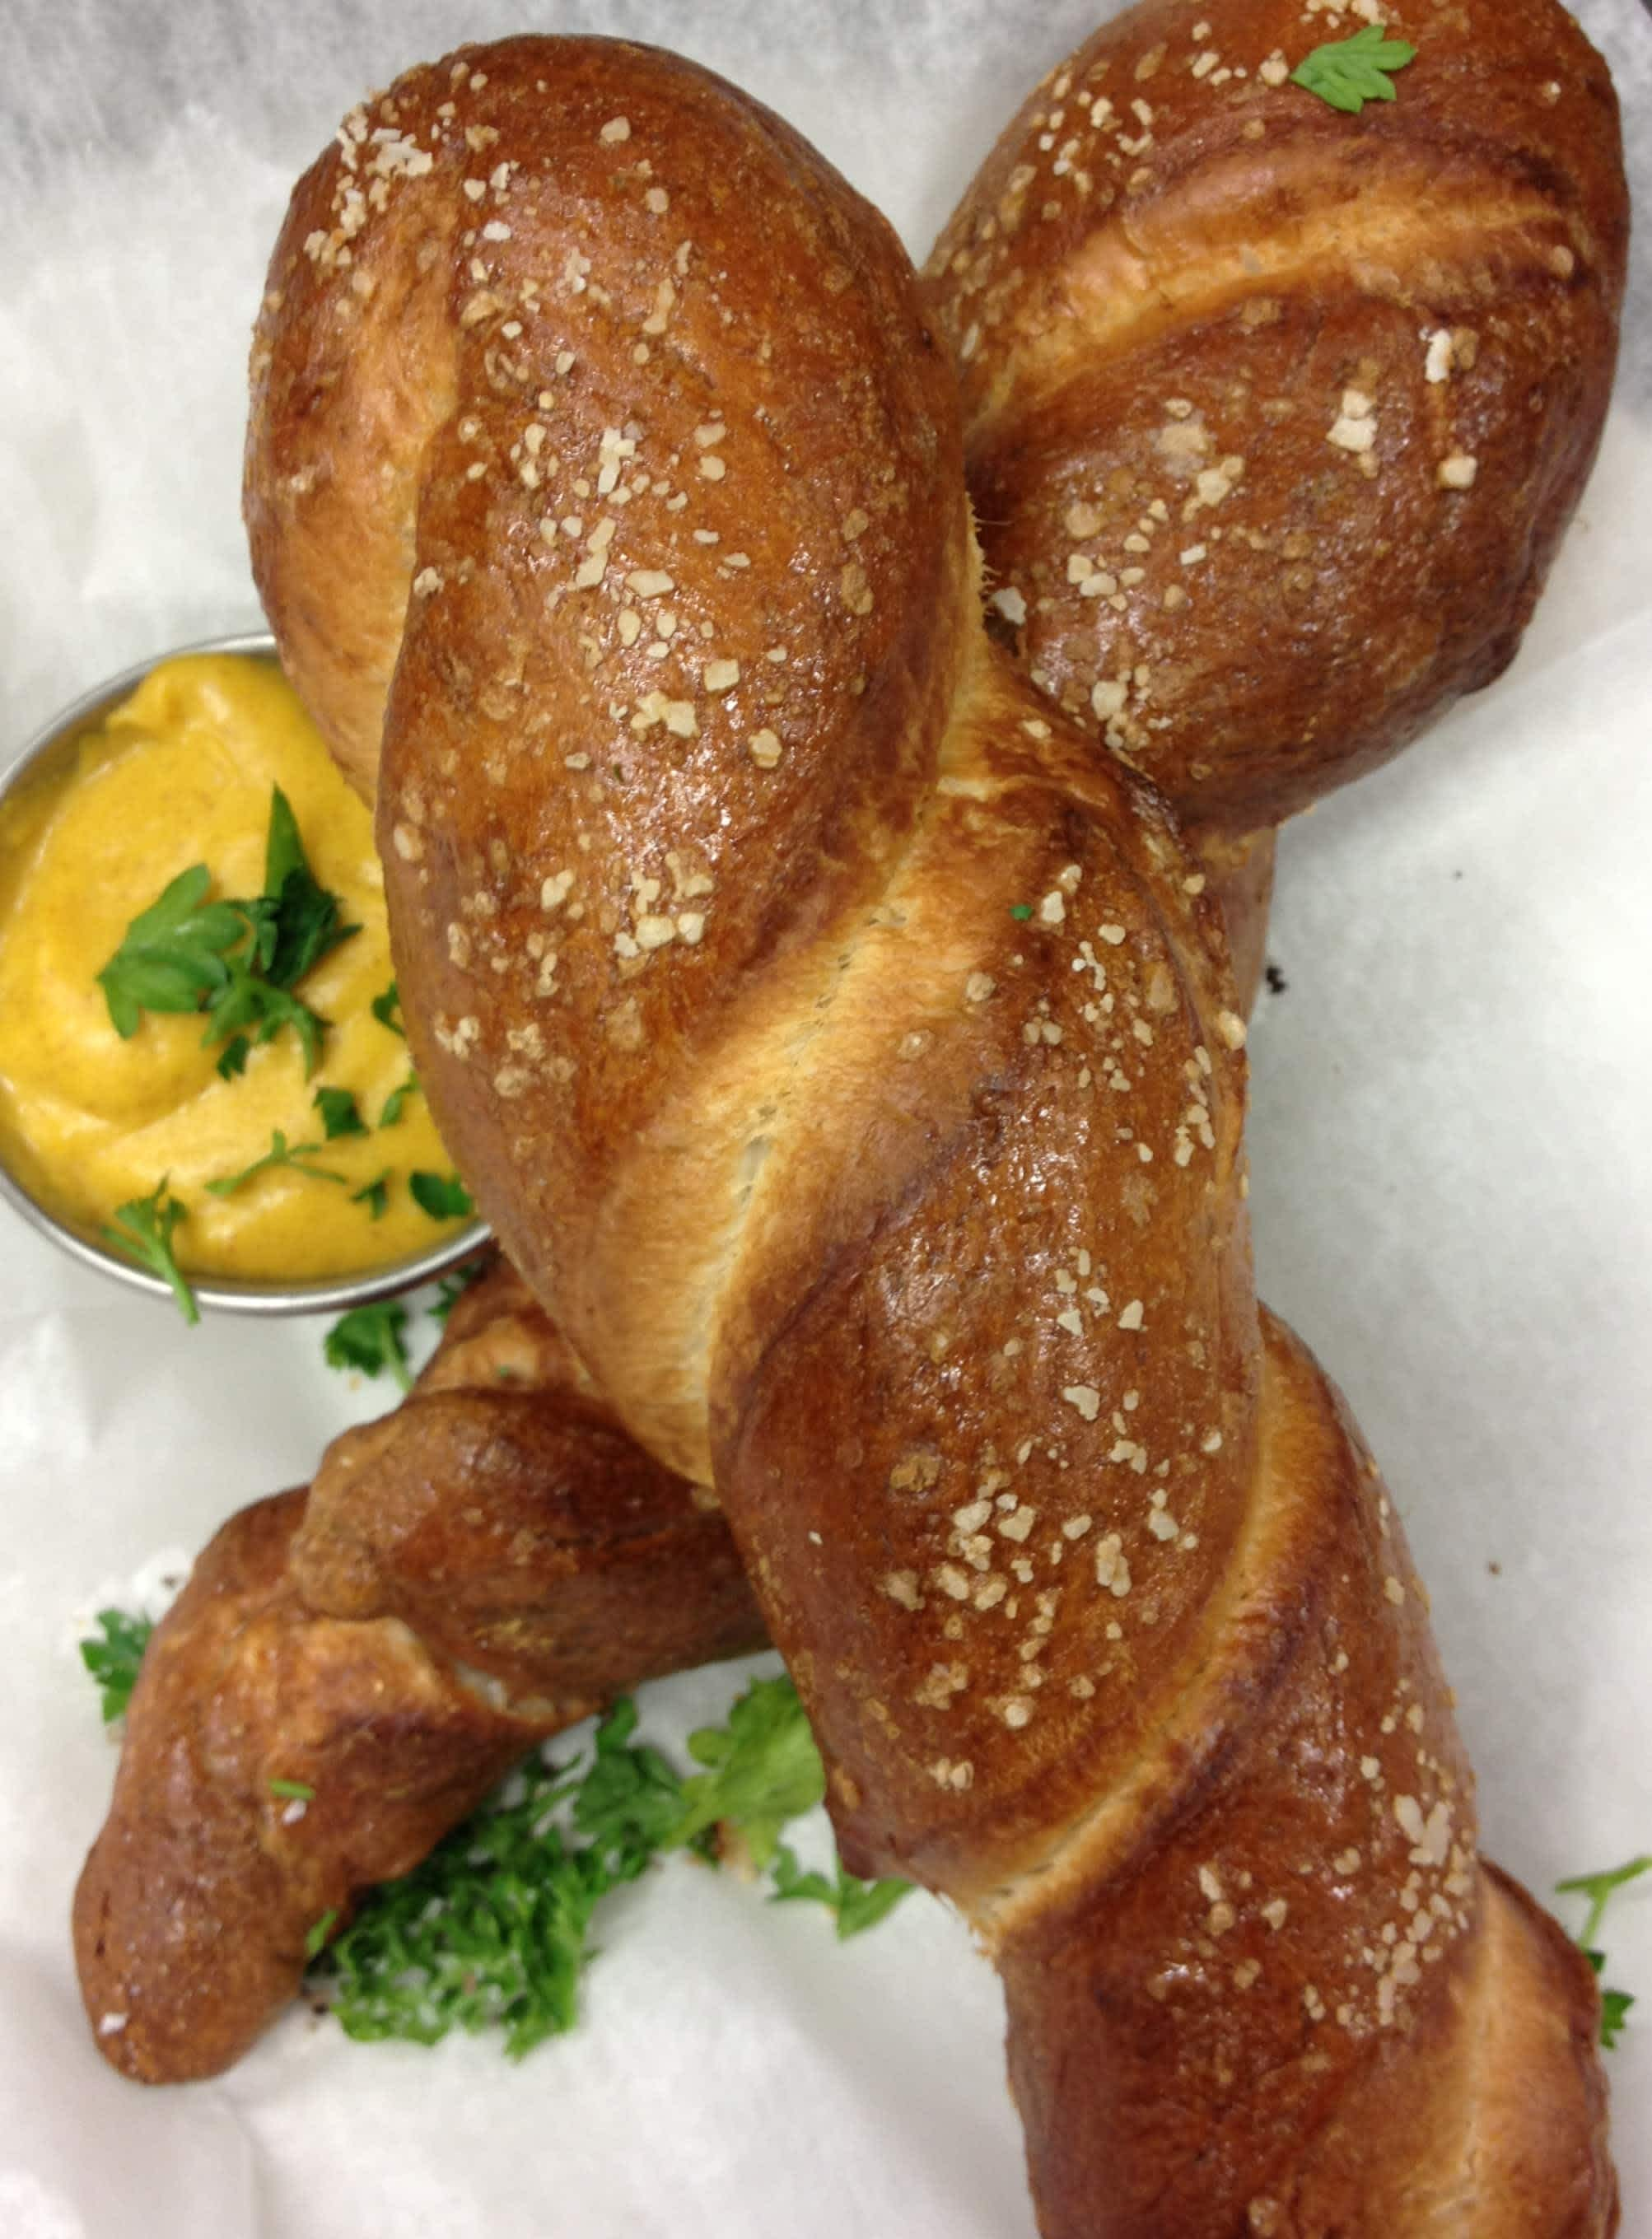 Homemade Pub Pretzels w/Dijon Cheddar Cheese Sauce at The Waterfront Pub and Eatery